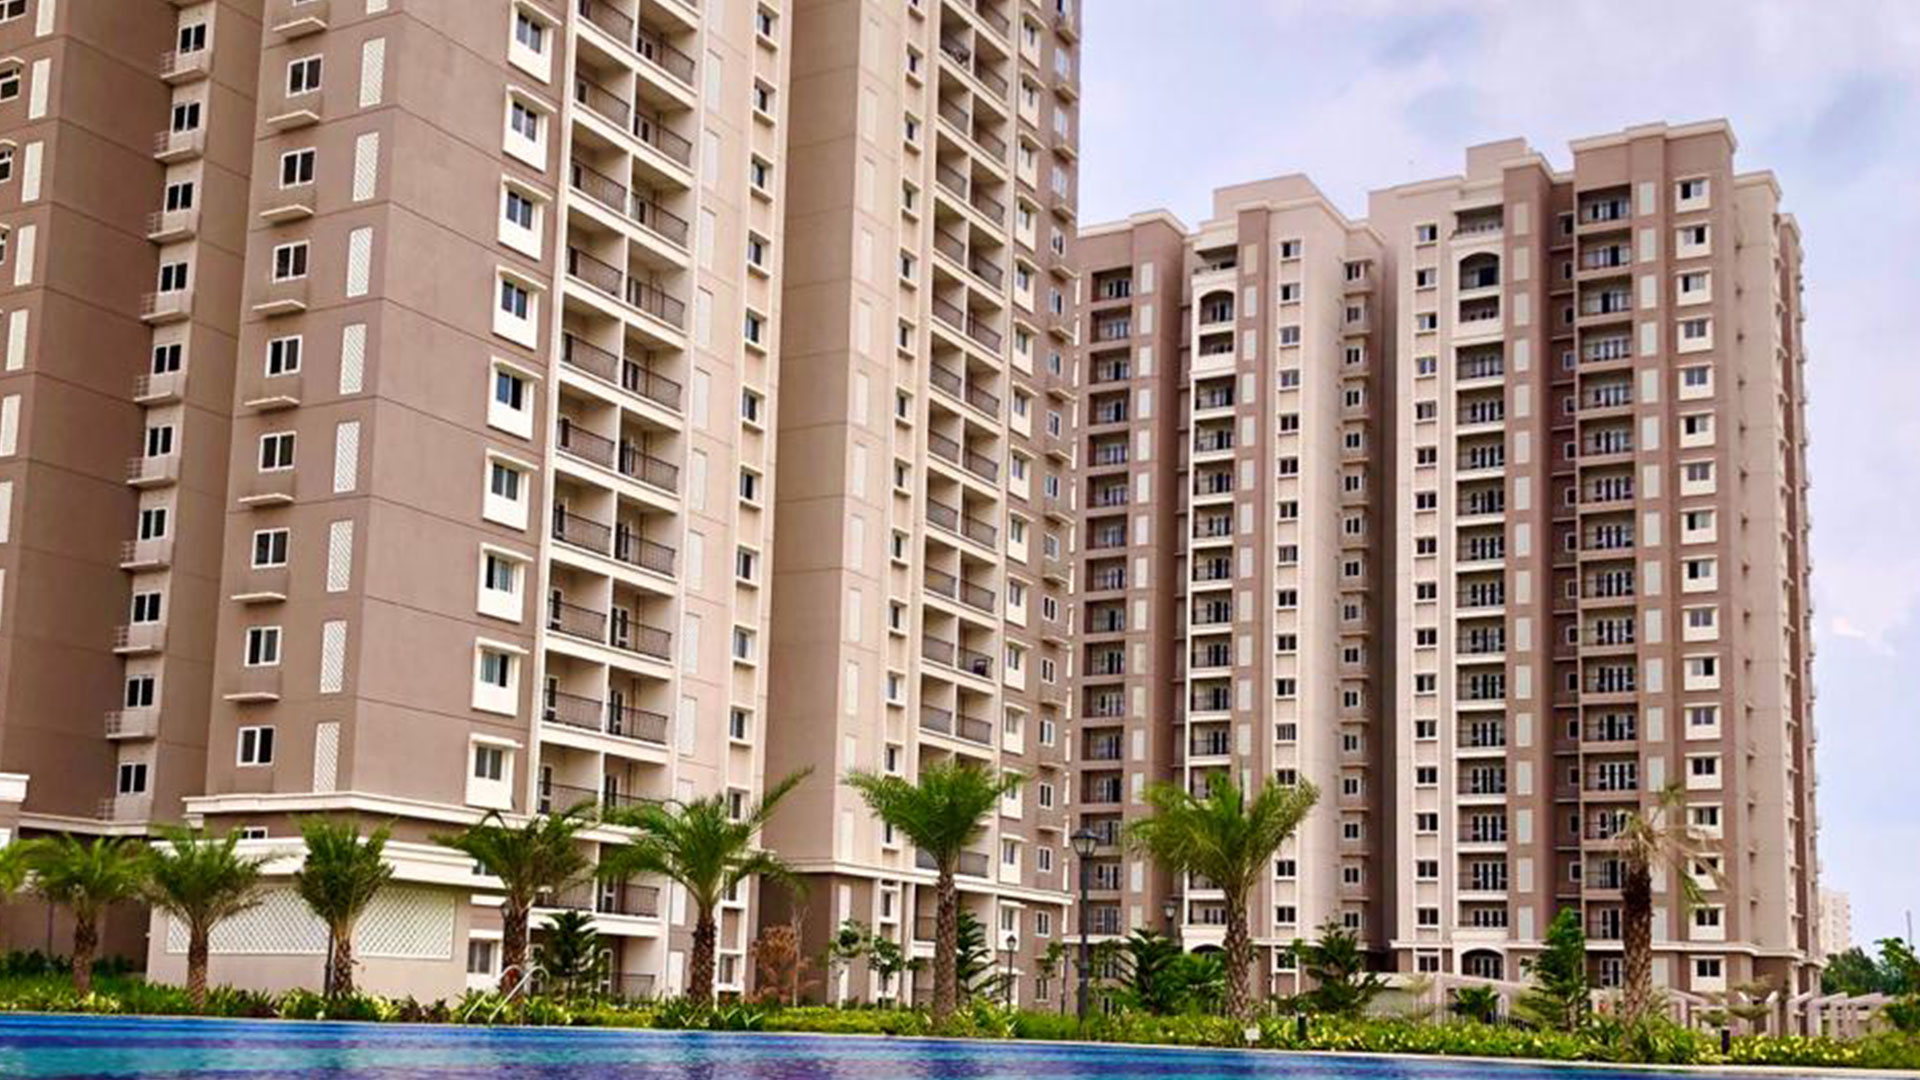 prestige-song-of-the-south-Apartment-in-yelenahalli-Bangalore-Image-03